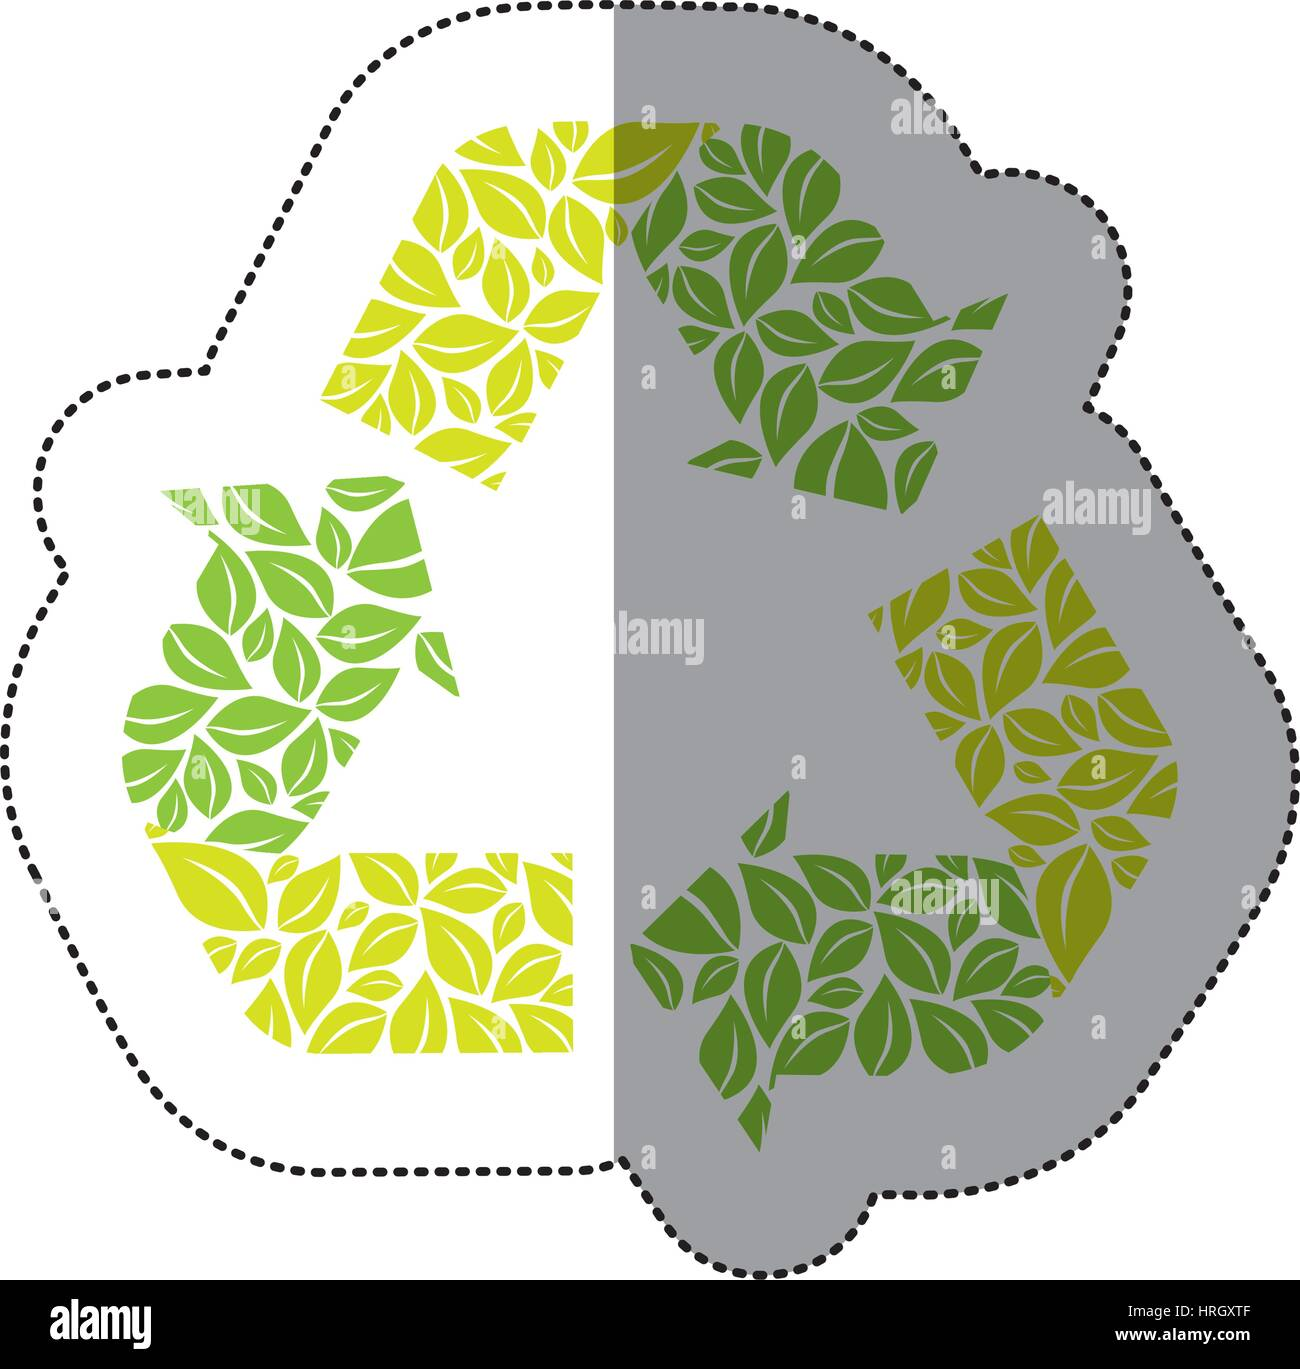 green symbol reuse, reduce and recycle icon - Stock Image